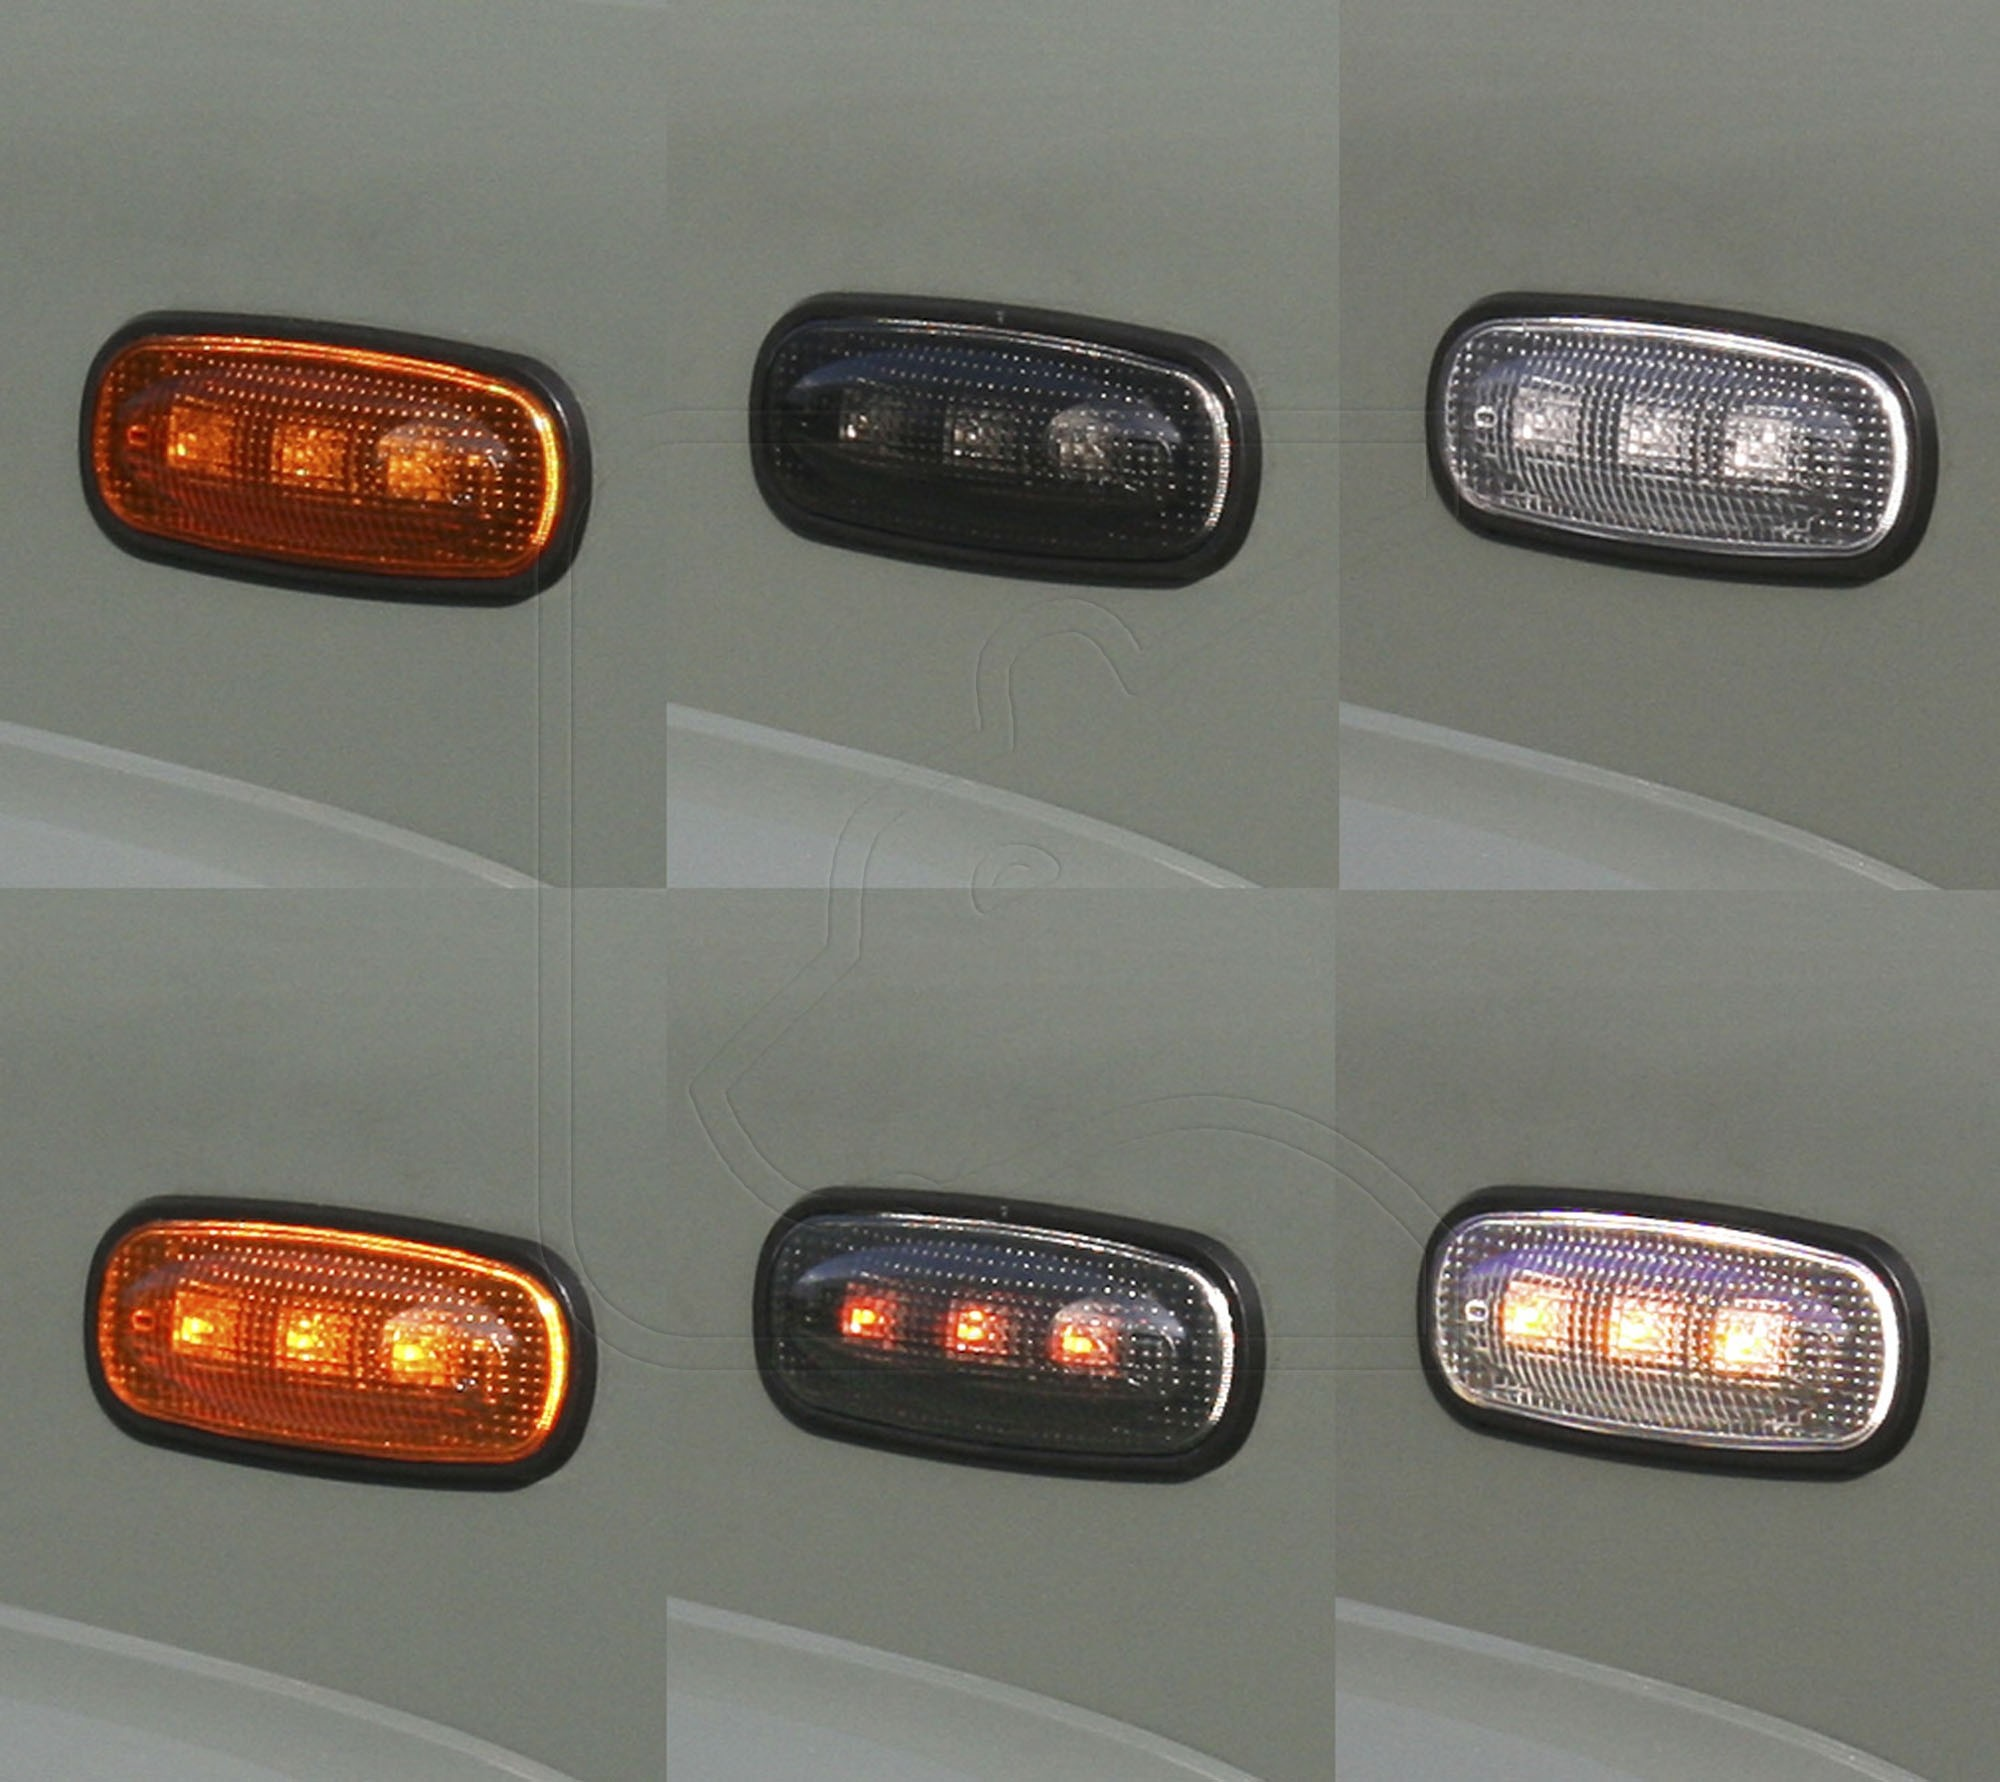 LED Wing Side Indicators for Land Rover Defender [***4-6 WEEK LEAD-TIME***]